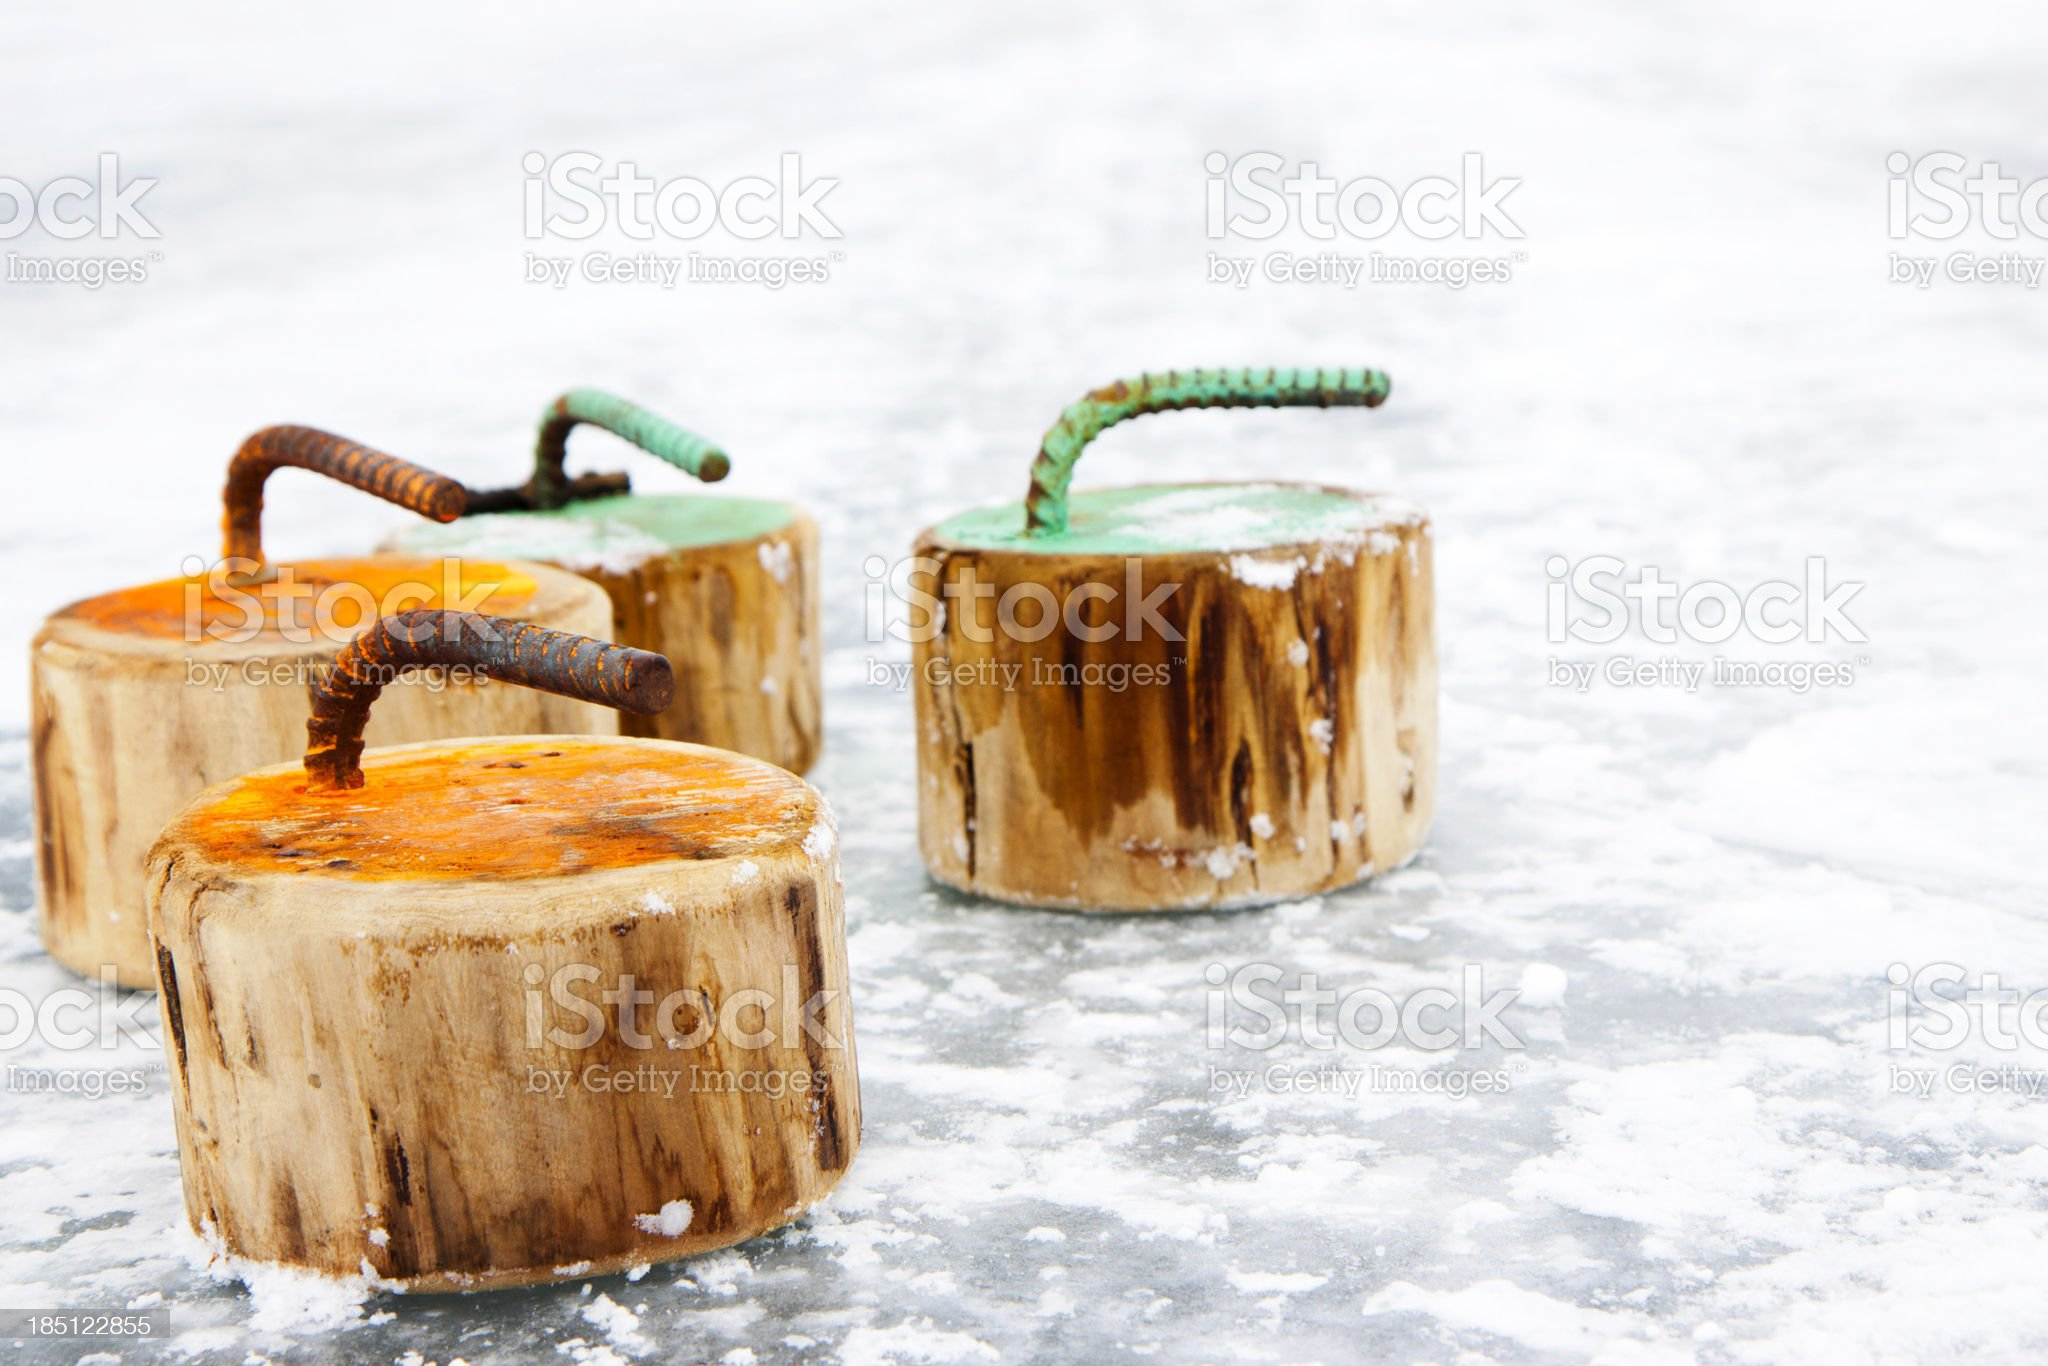 Wood Curling Rocks royalty-free stock photo